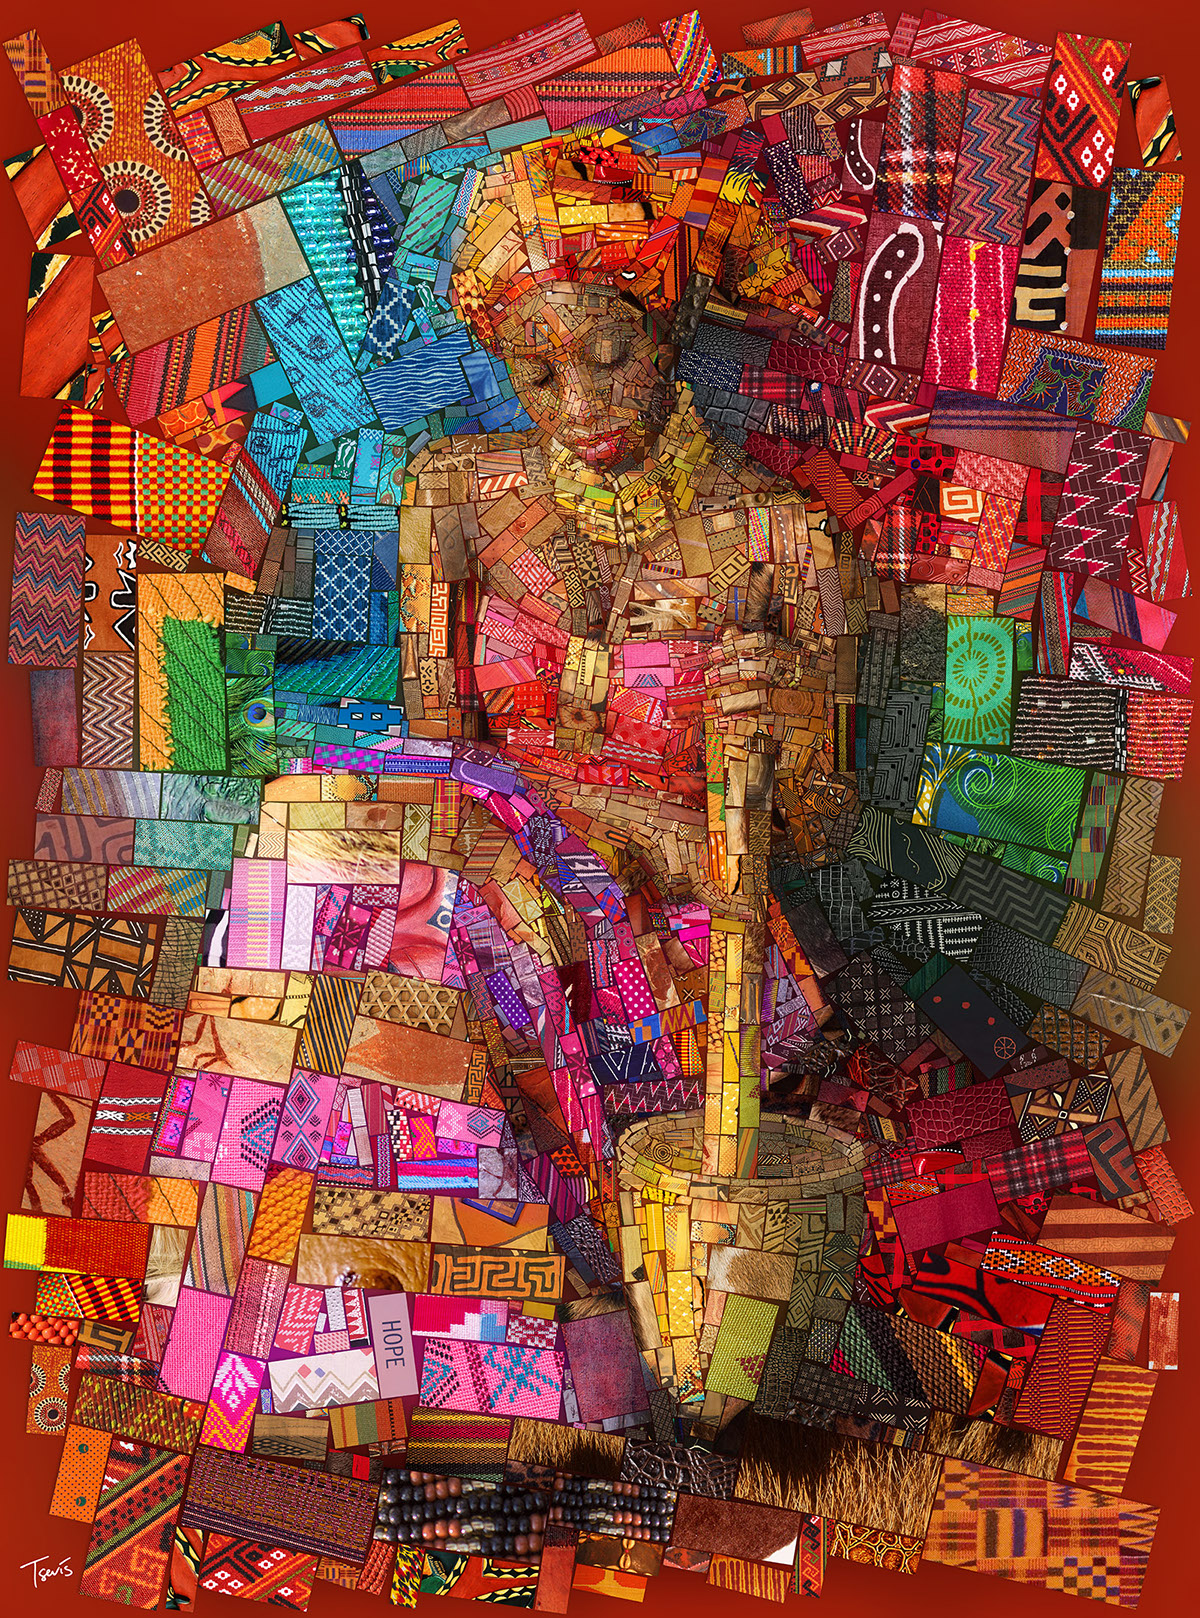 Incredible Mosaics Inspired By The African Bricks By Charis Tsevis Graphic Art News